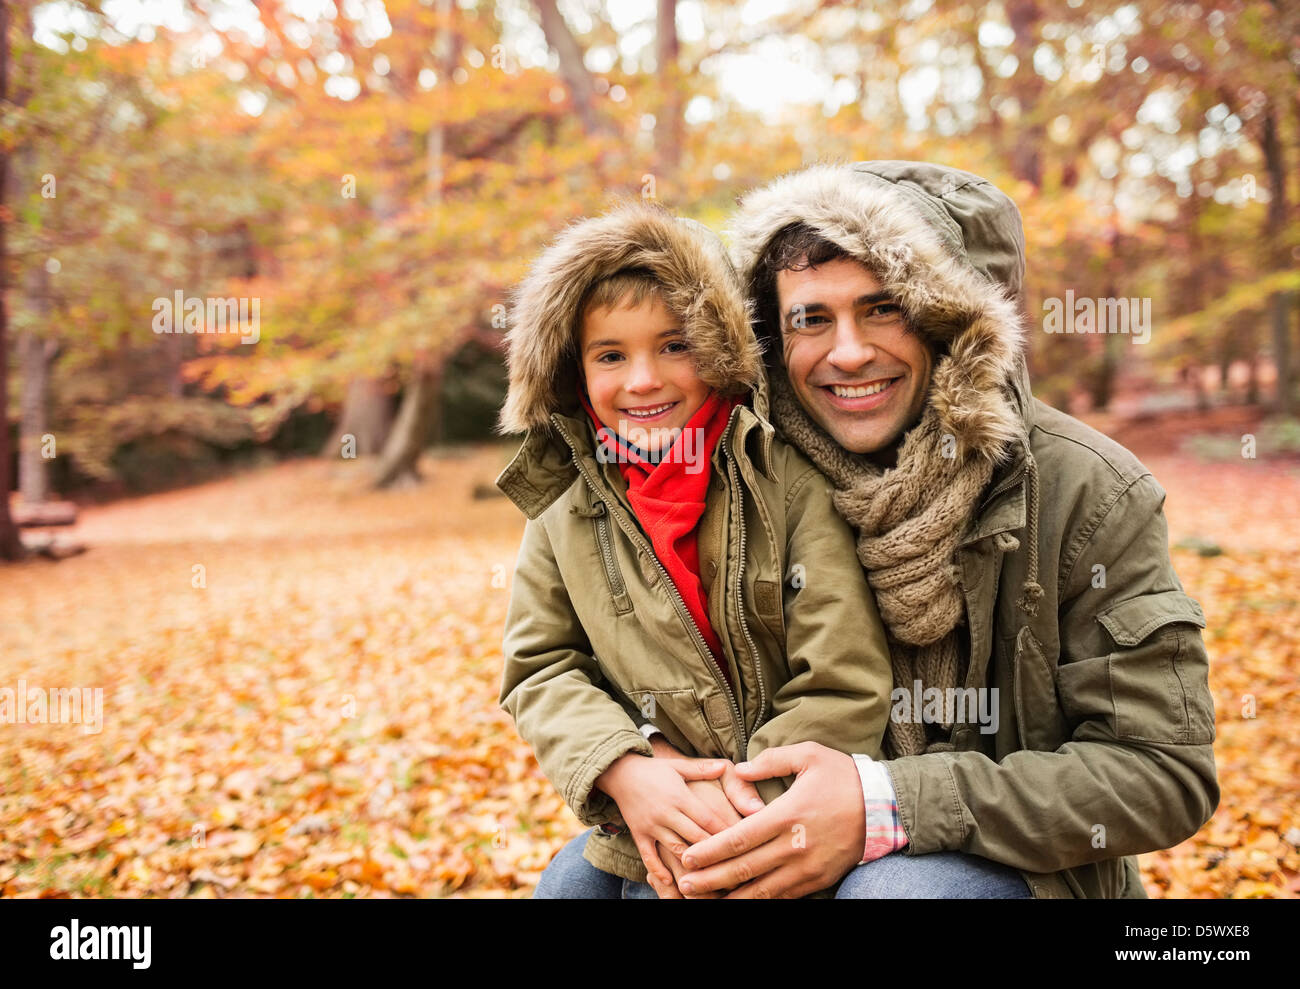 Père et fils smiling in park Photo Stock